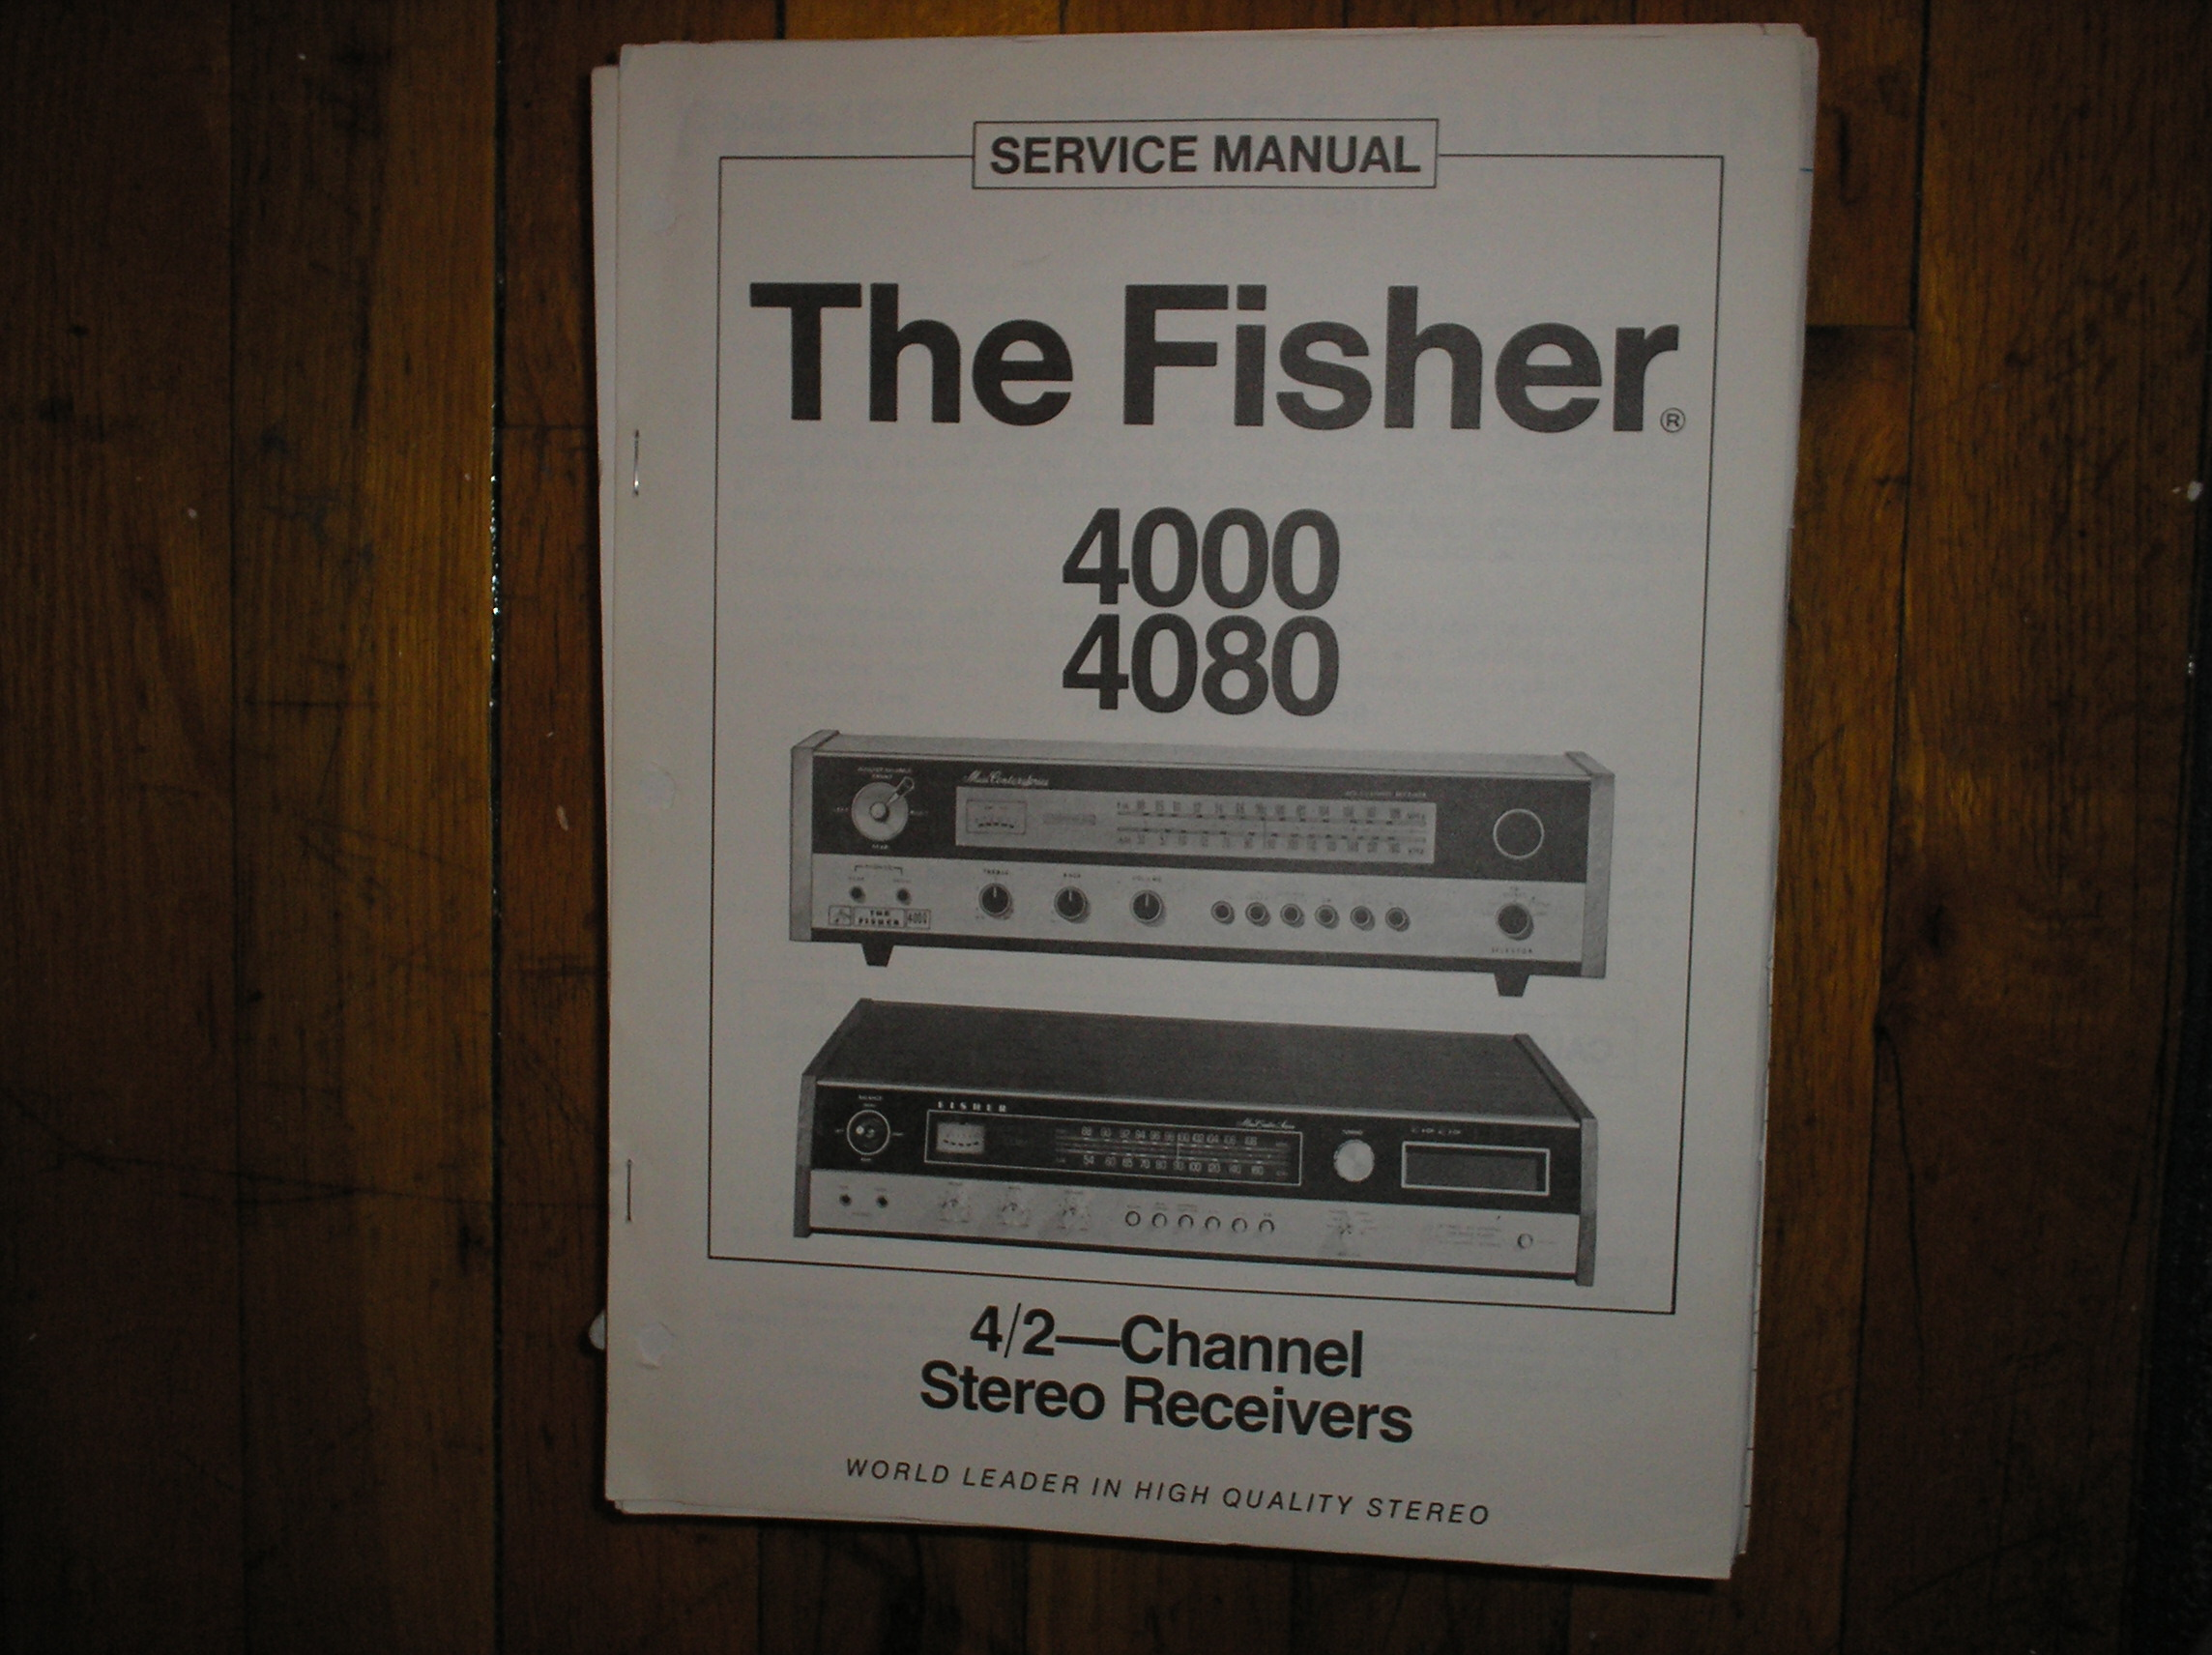 4000 4080 Receiver Service Manual